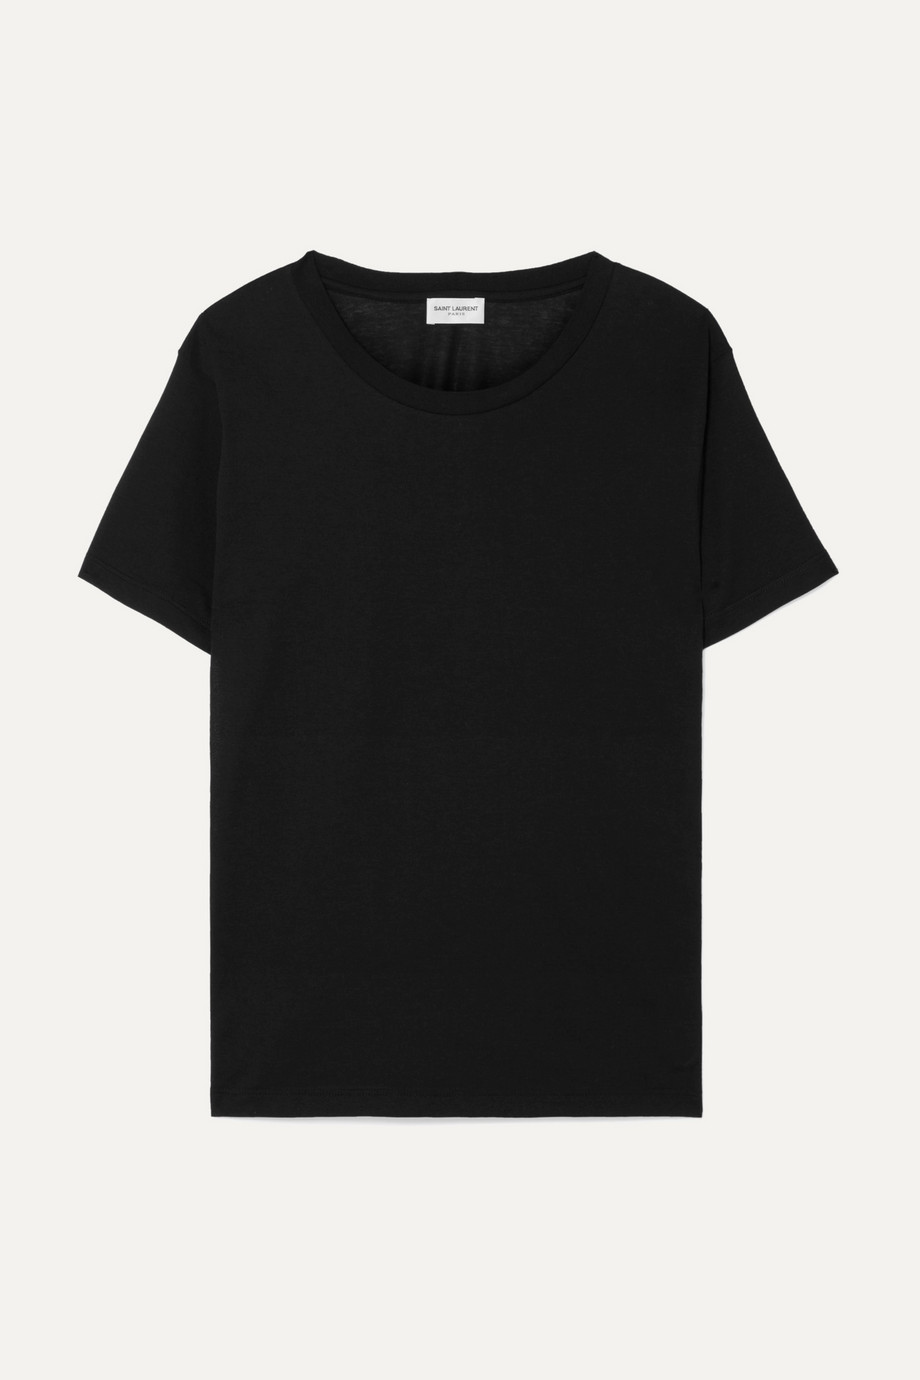 SAINT LAURENT Essentials T-Shirt aus Baumwoll-Jersey mit Applikation